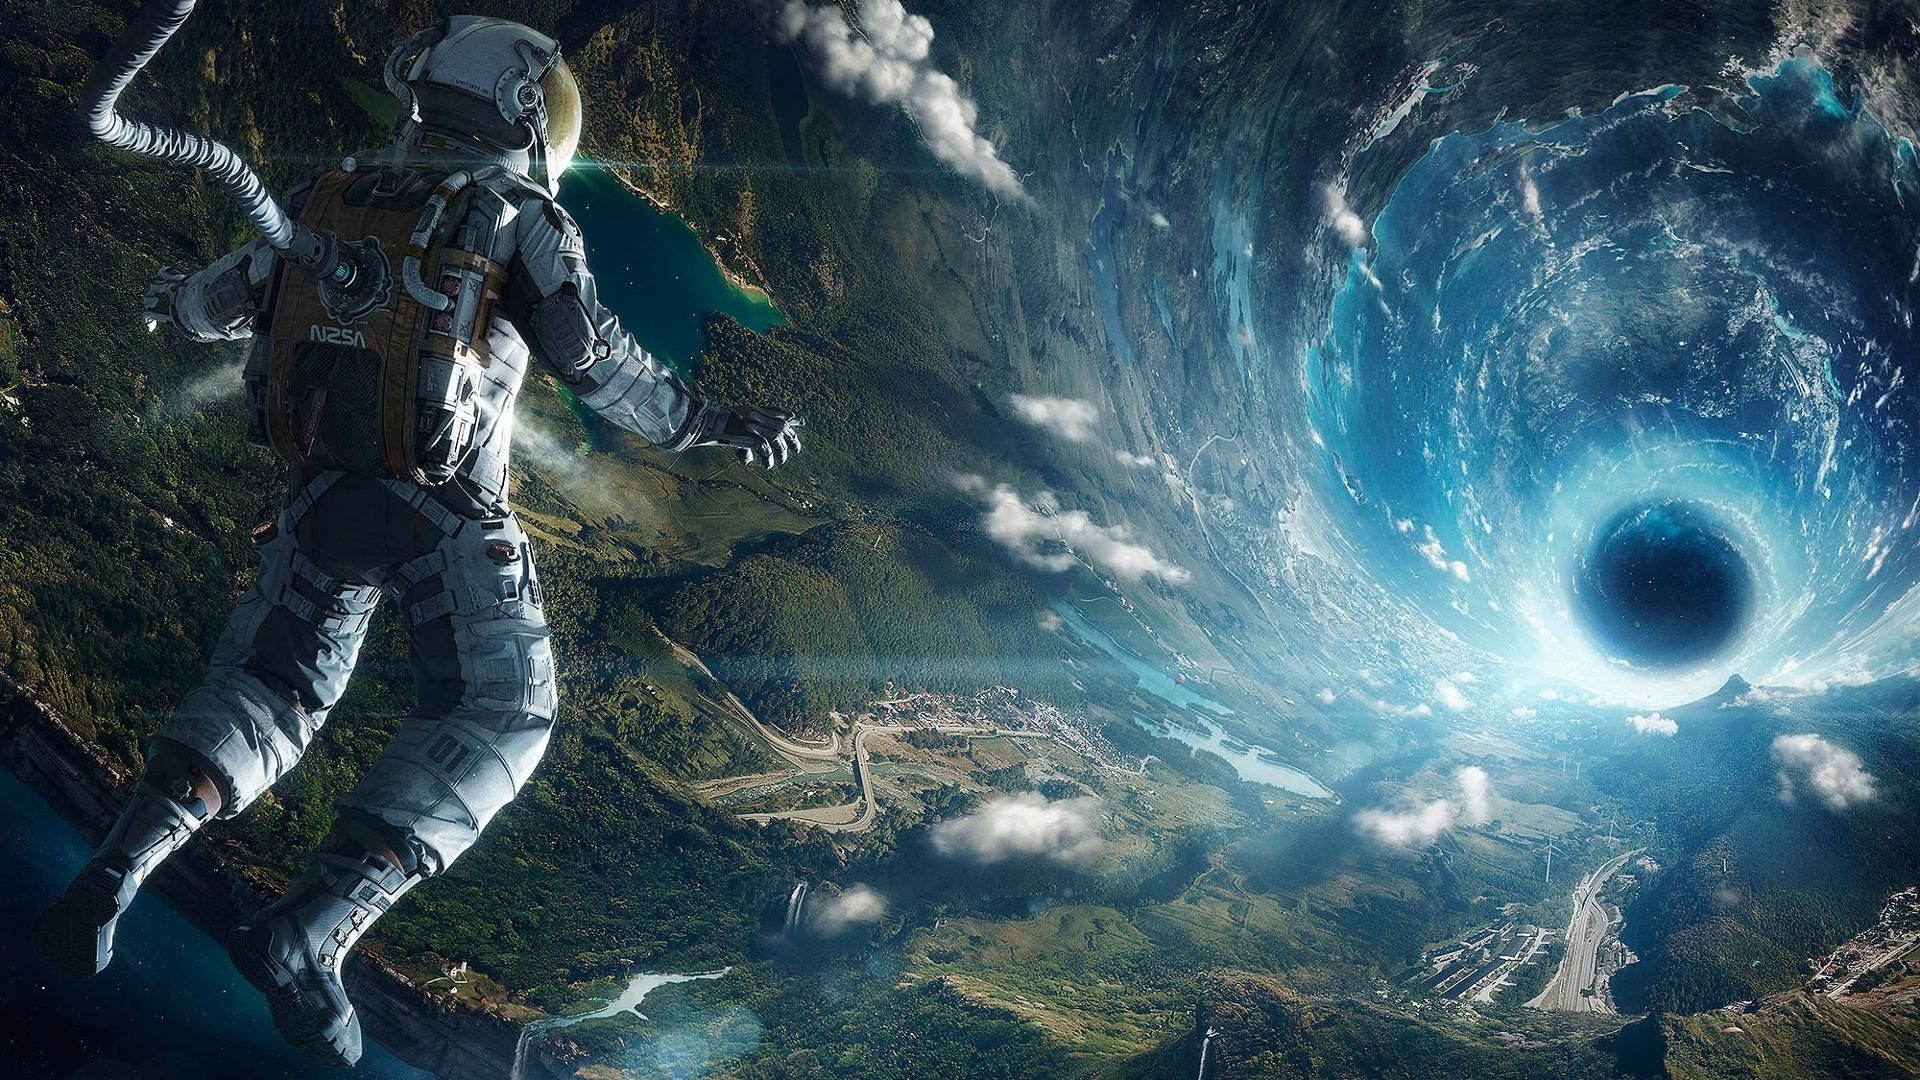 Interstellar Wallpaper In 2020 Space Illustration Space Art Rendezvous With Rama